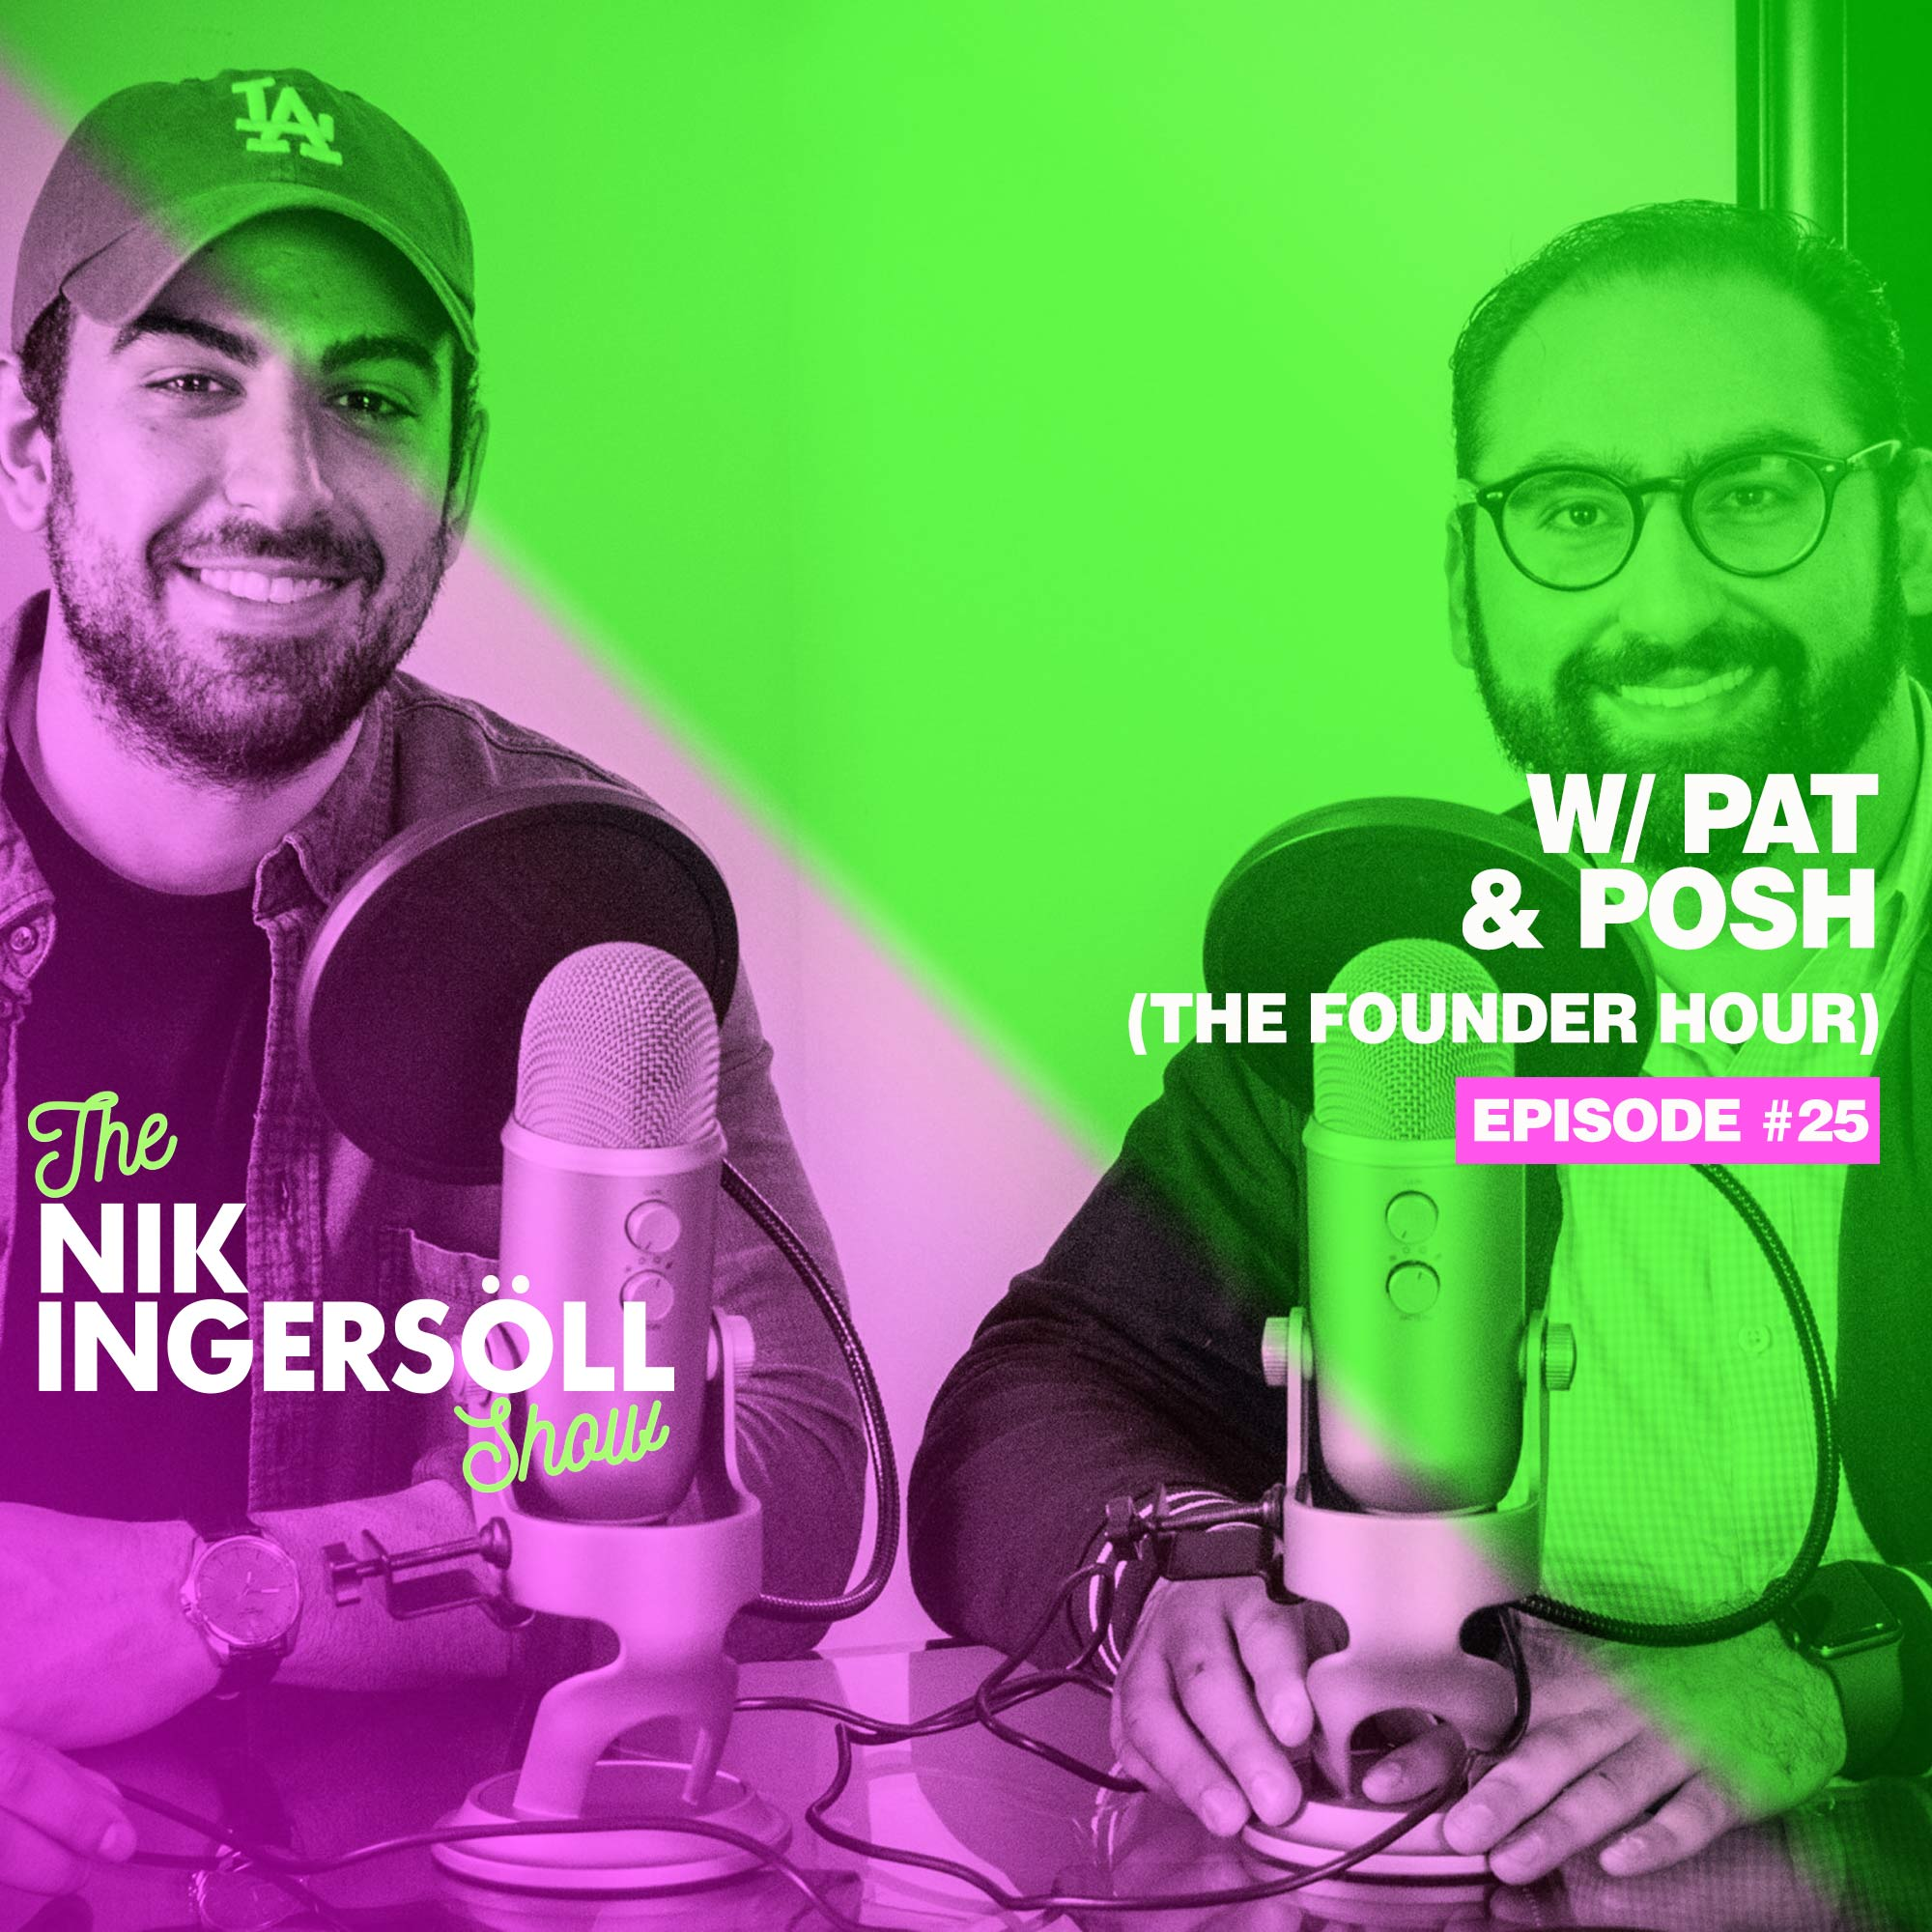 Pat & Posh - The Founder Hour Podcast